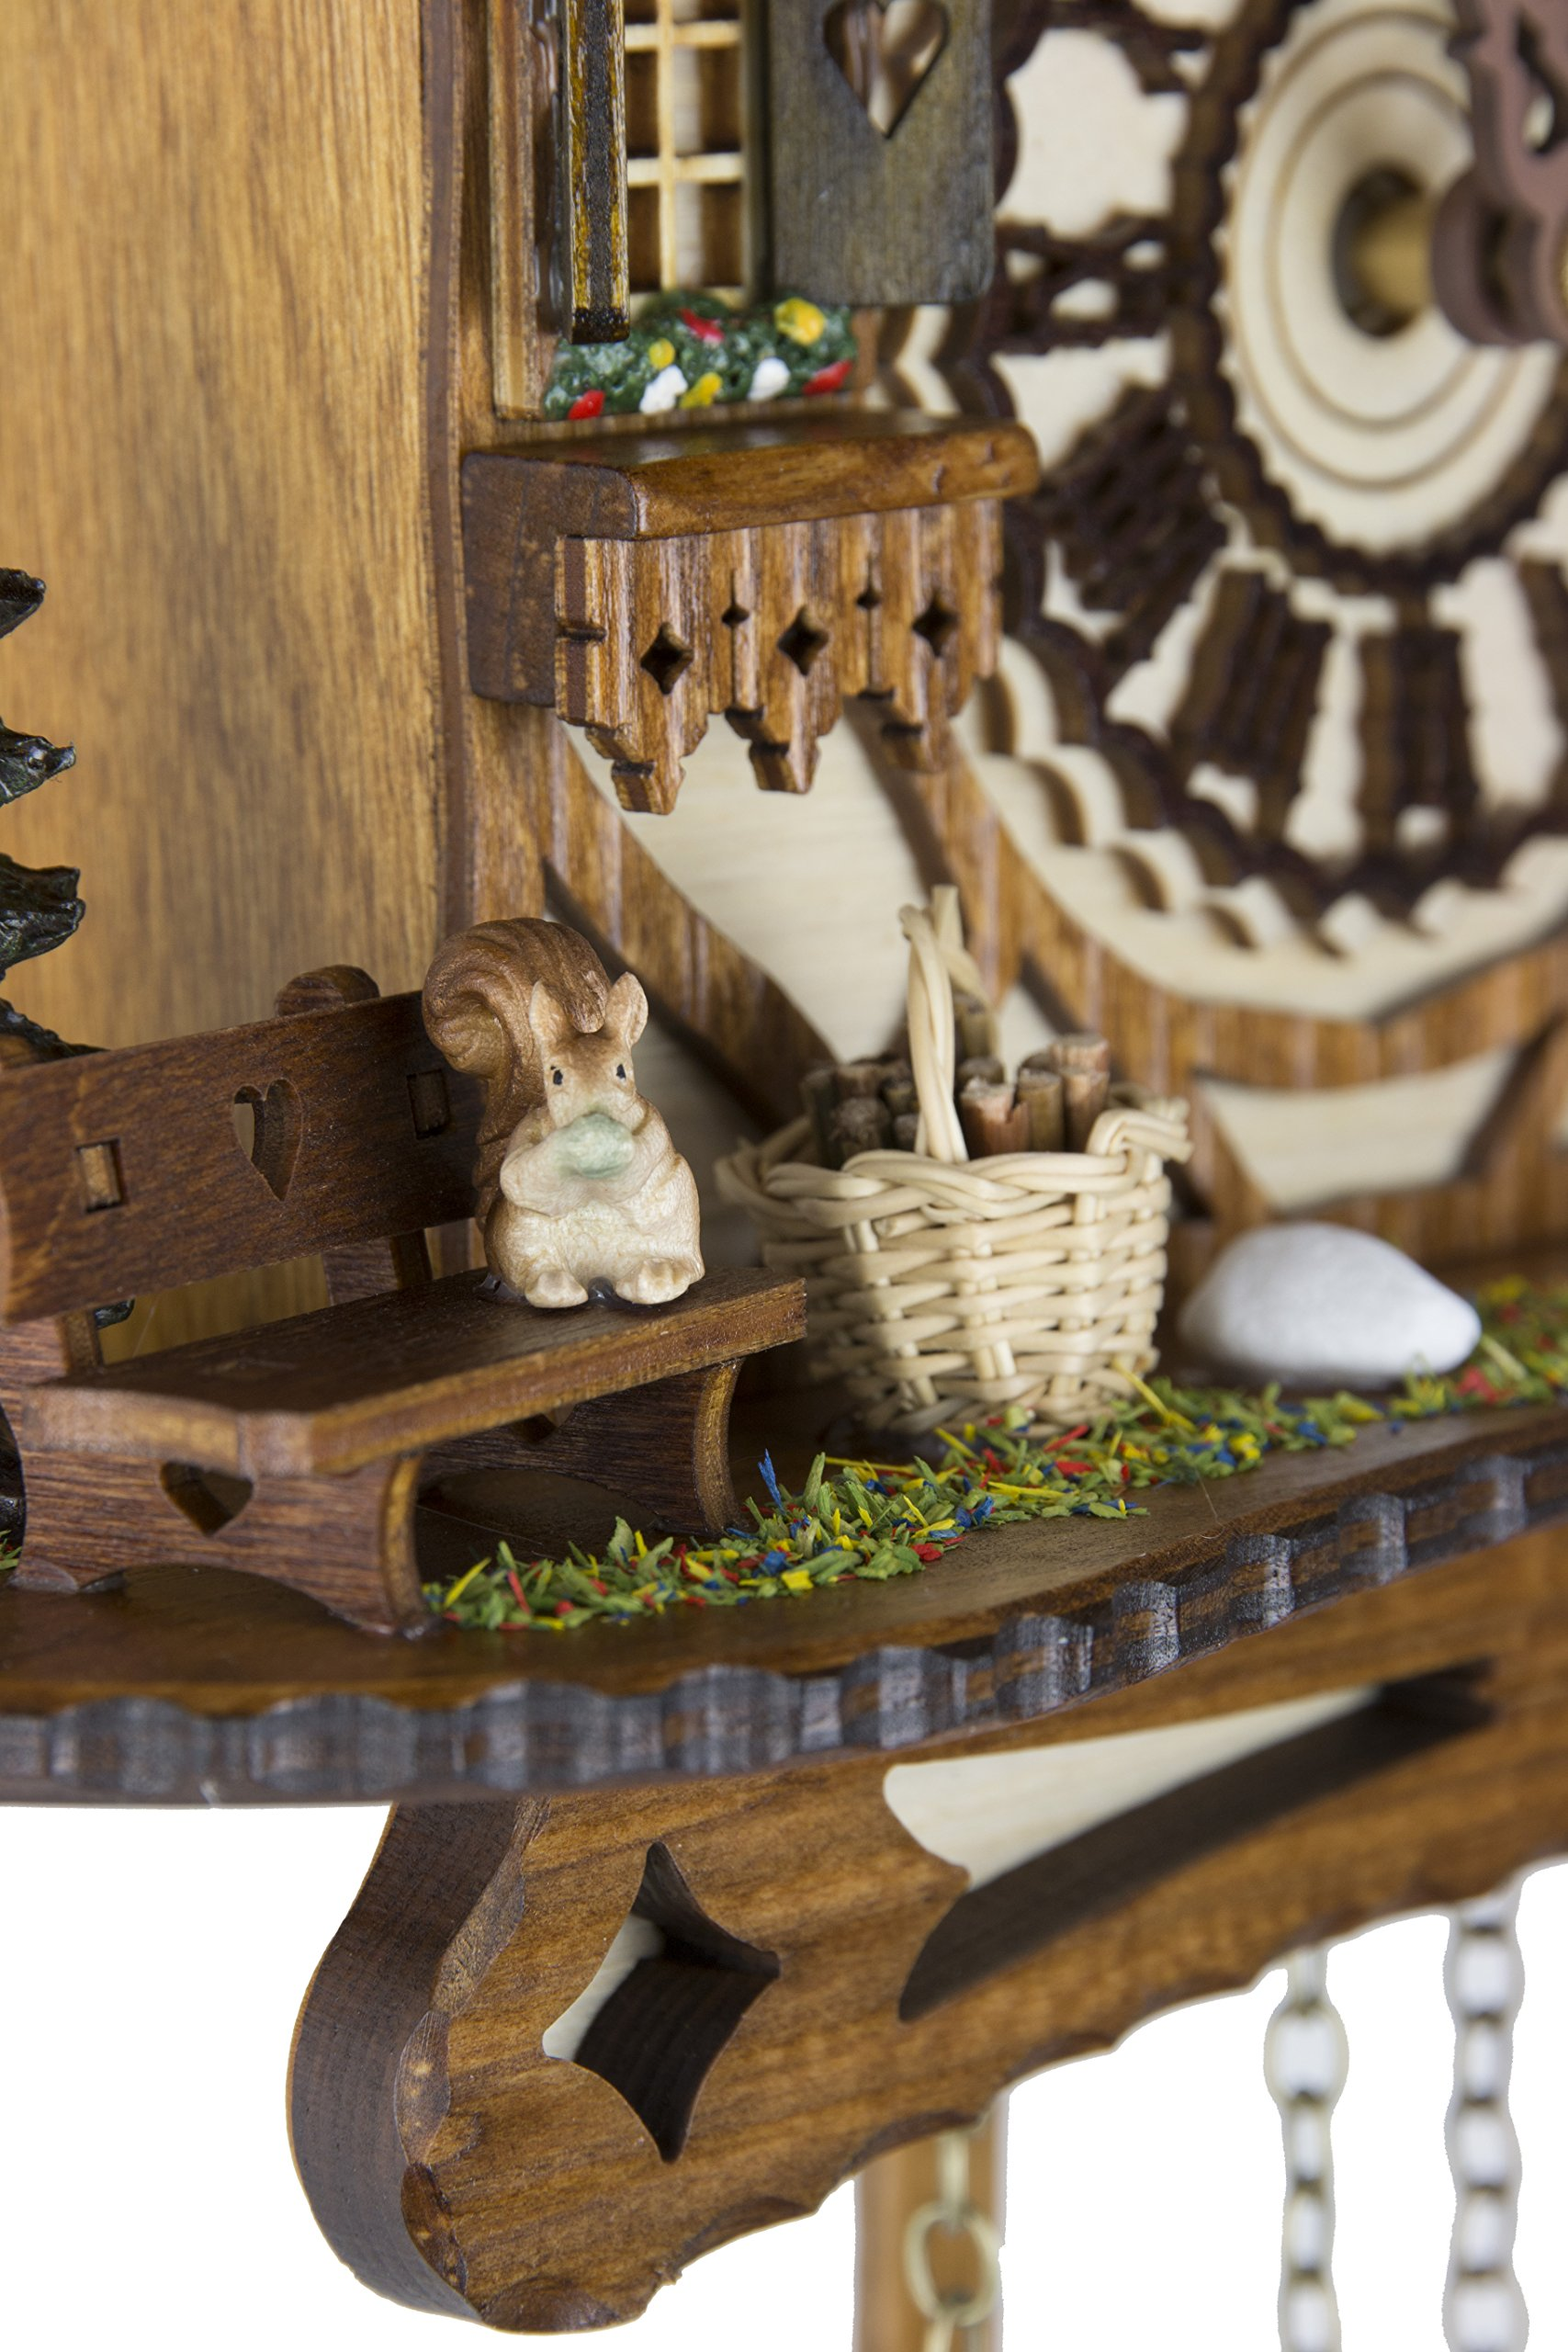 German Cuckoo Clock - Blackforest Hillside Chalet with wonderful animals - BY CUCKOO-PALACE with quartz movement - 10 1/4 inches height by Cuckoo-Palace (Image #1)